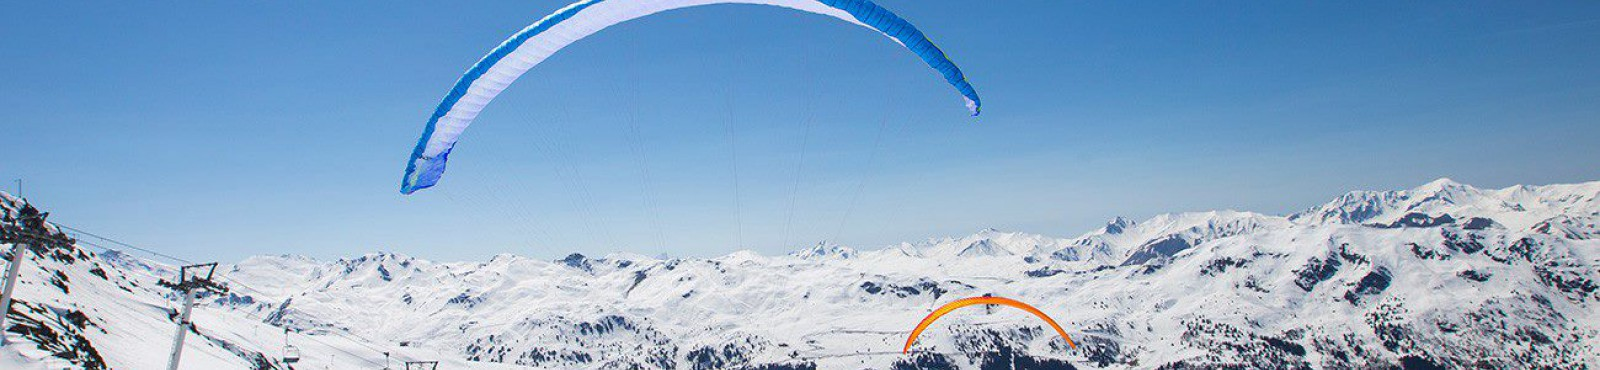 parapente Courchevel